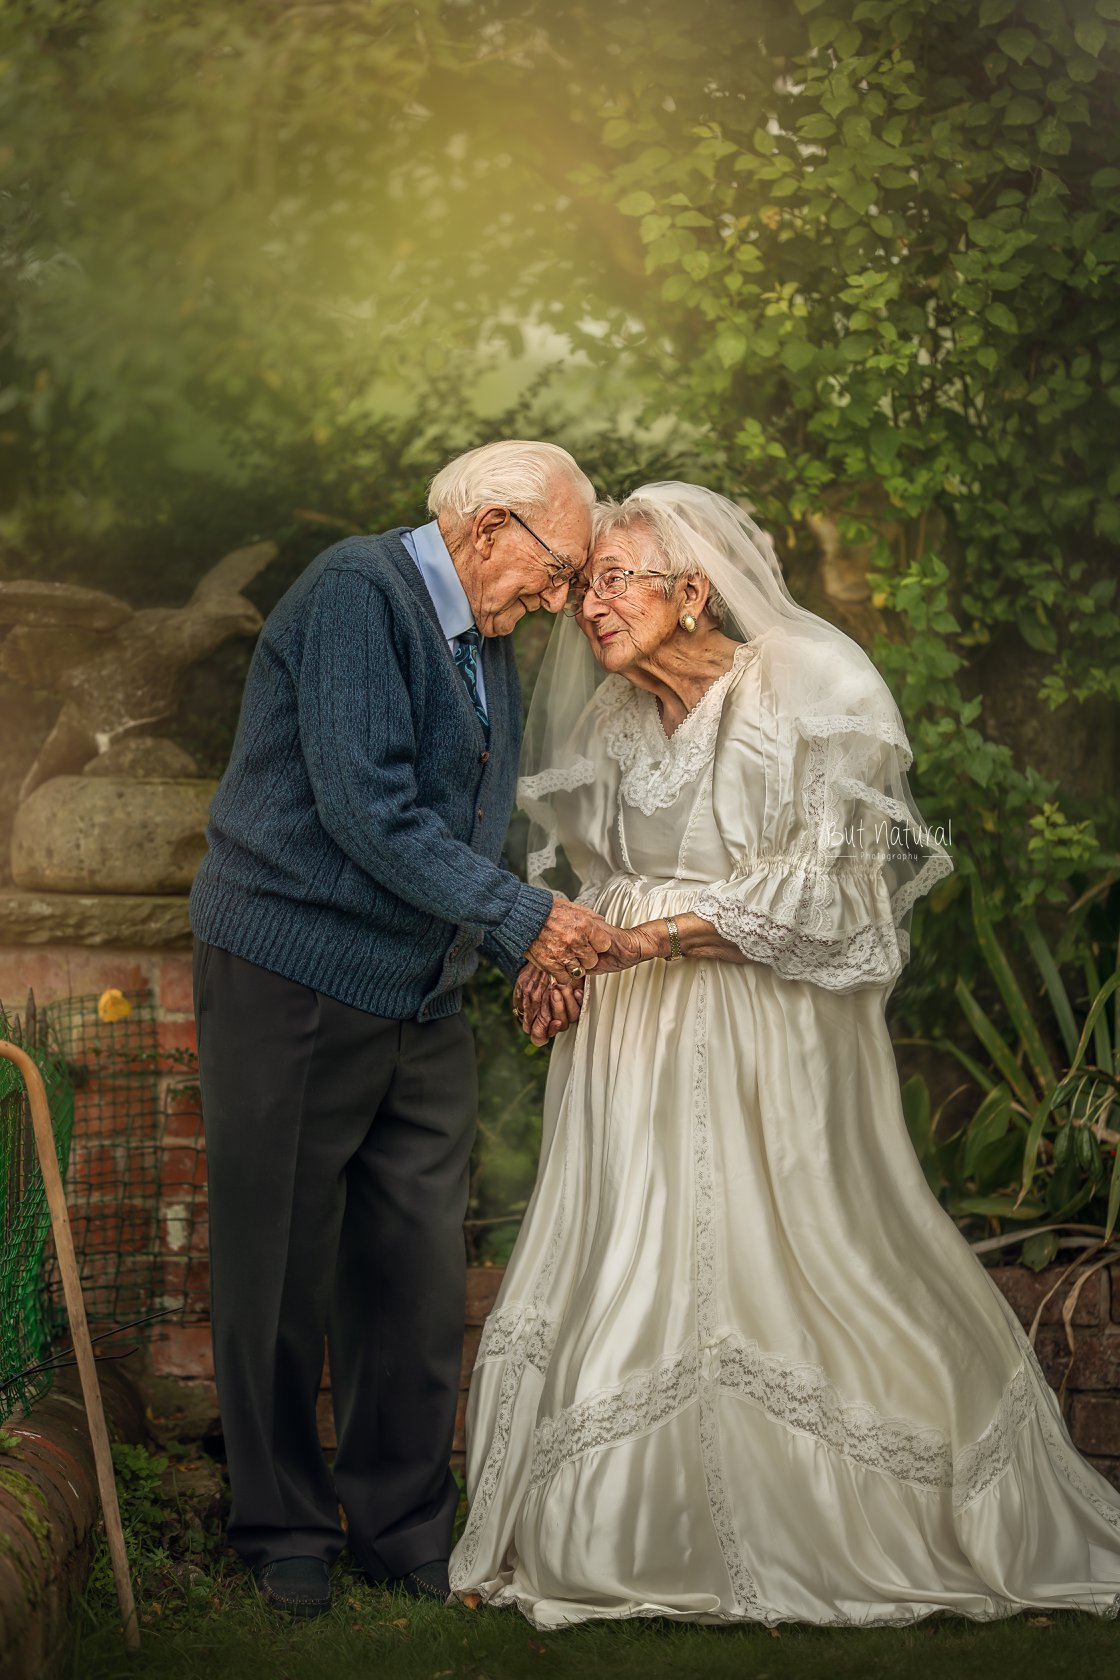 Elder couple head touch with love | Elderly Photoshoot by Sujata Setia - But Natural Photography